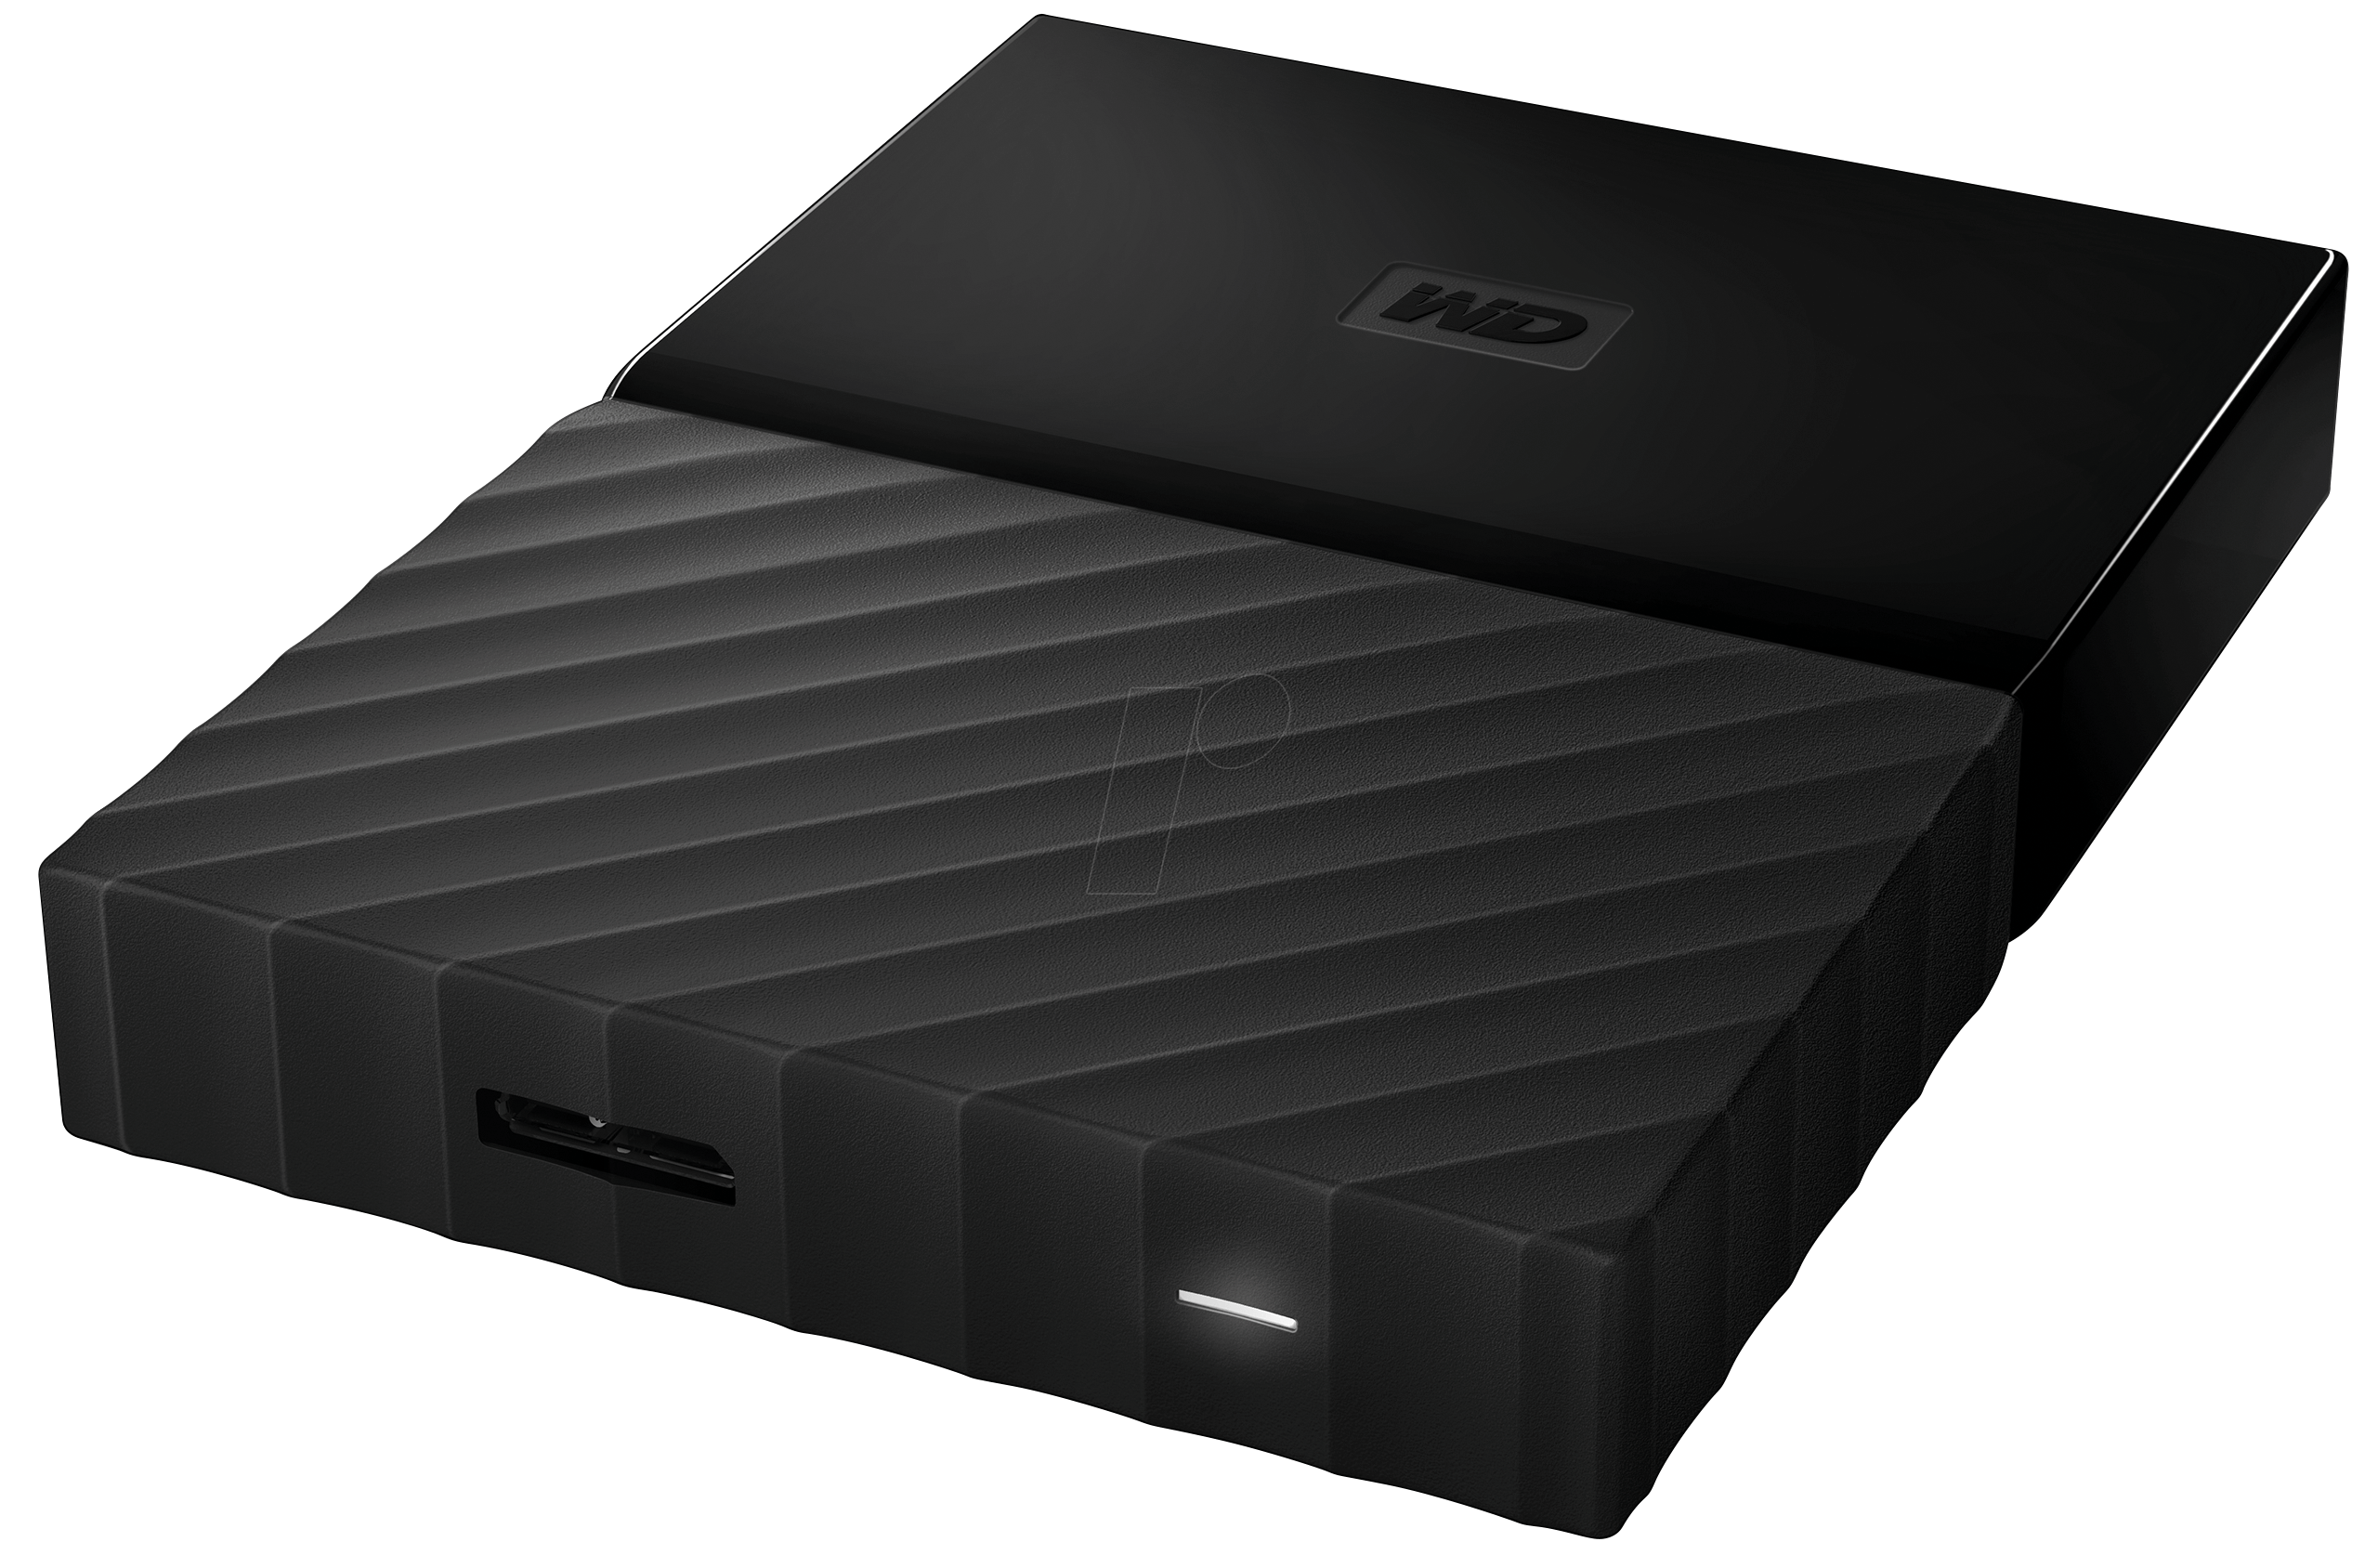 WDBYNN0010BBK: WD 1TB My Passport Portable Hard Drive ...